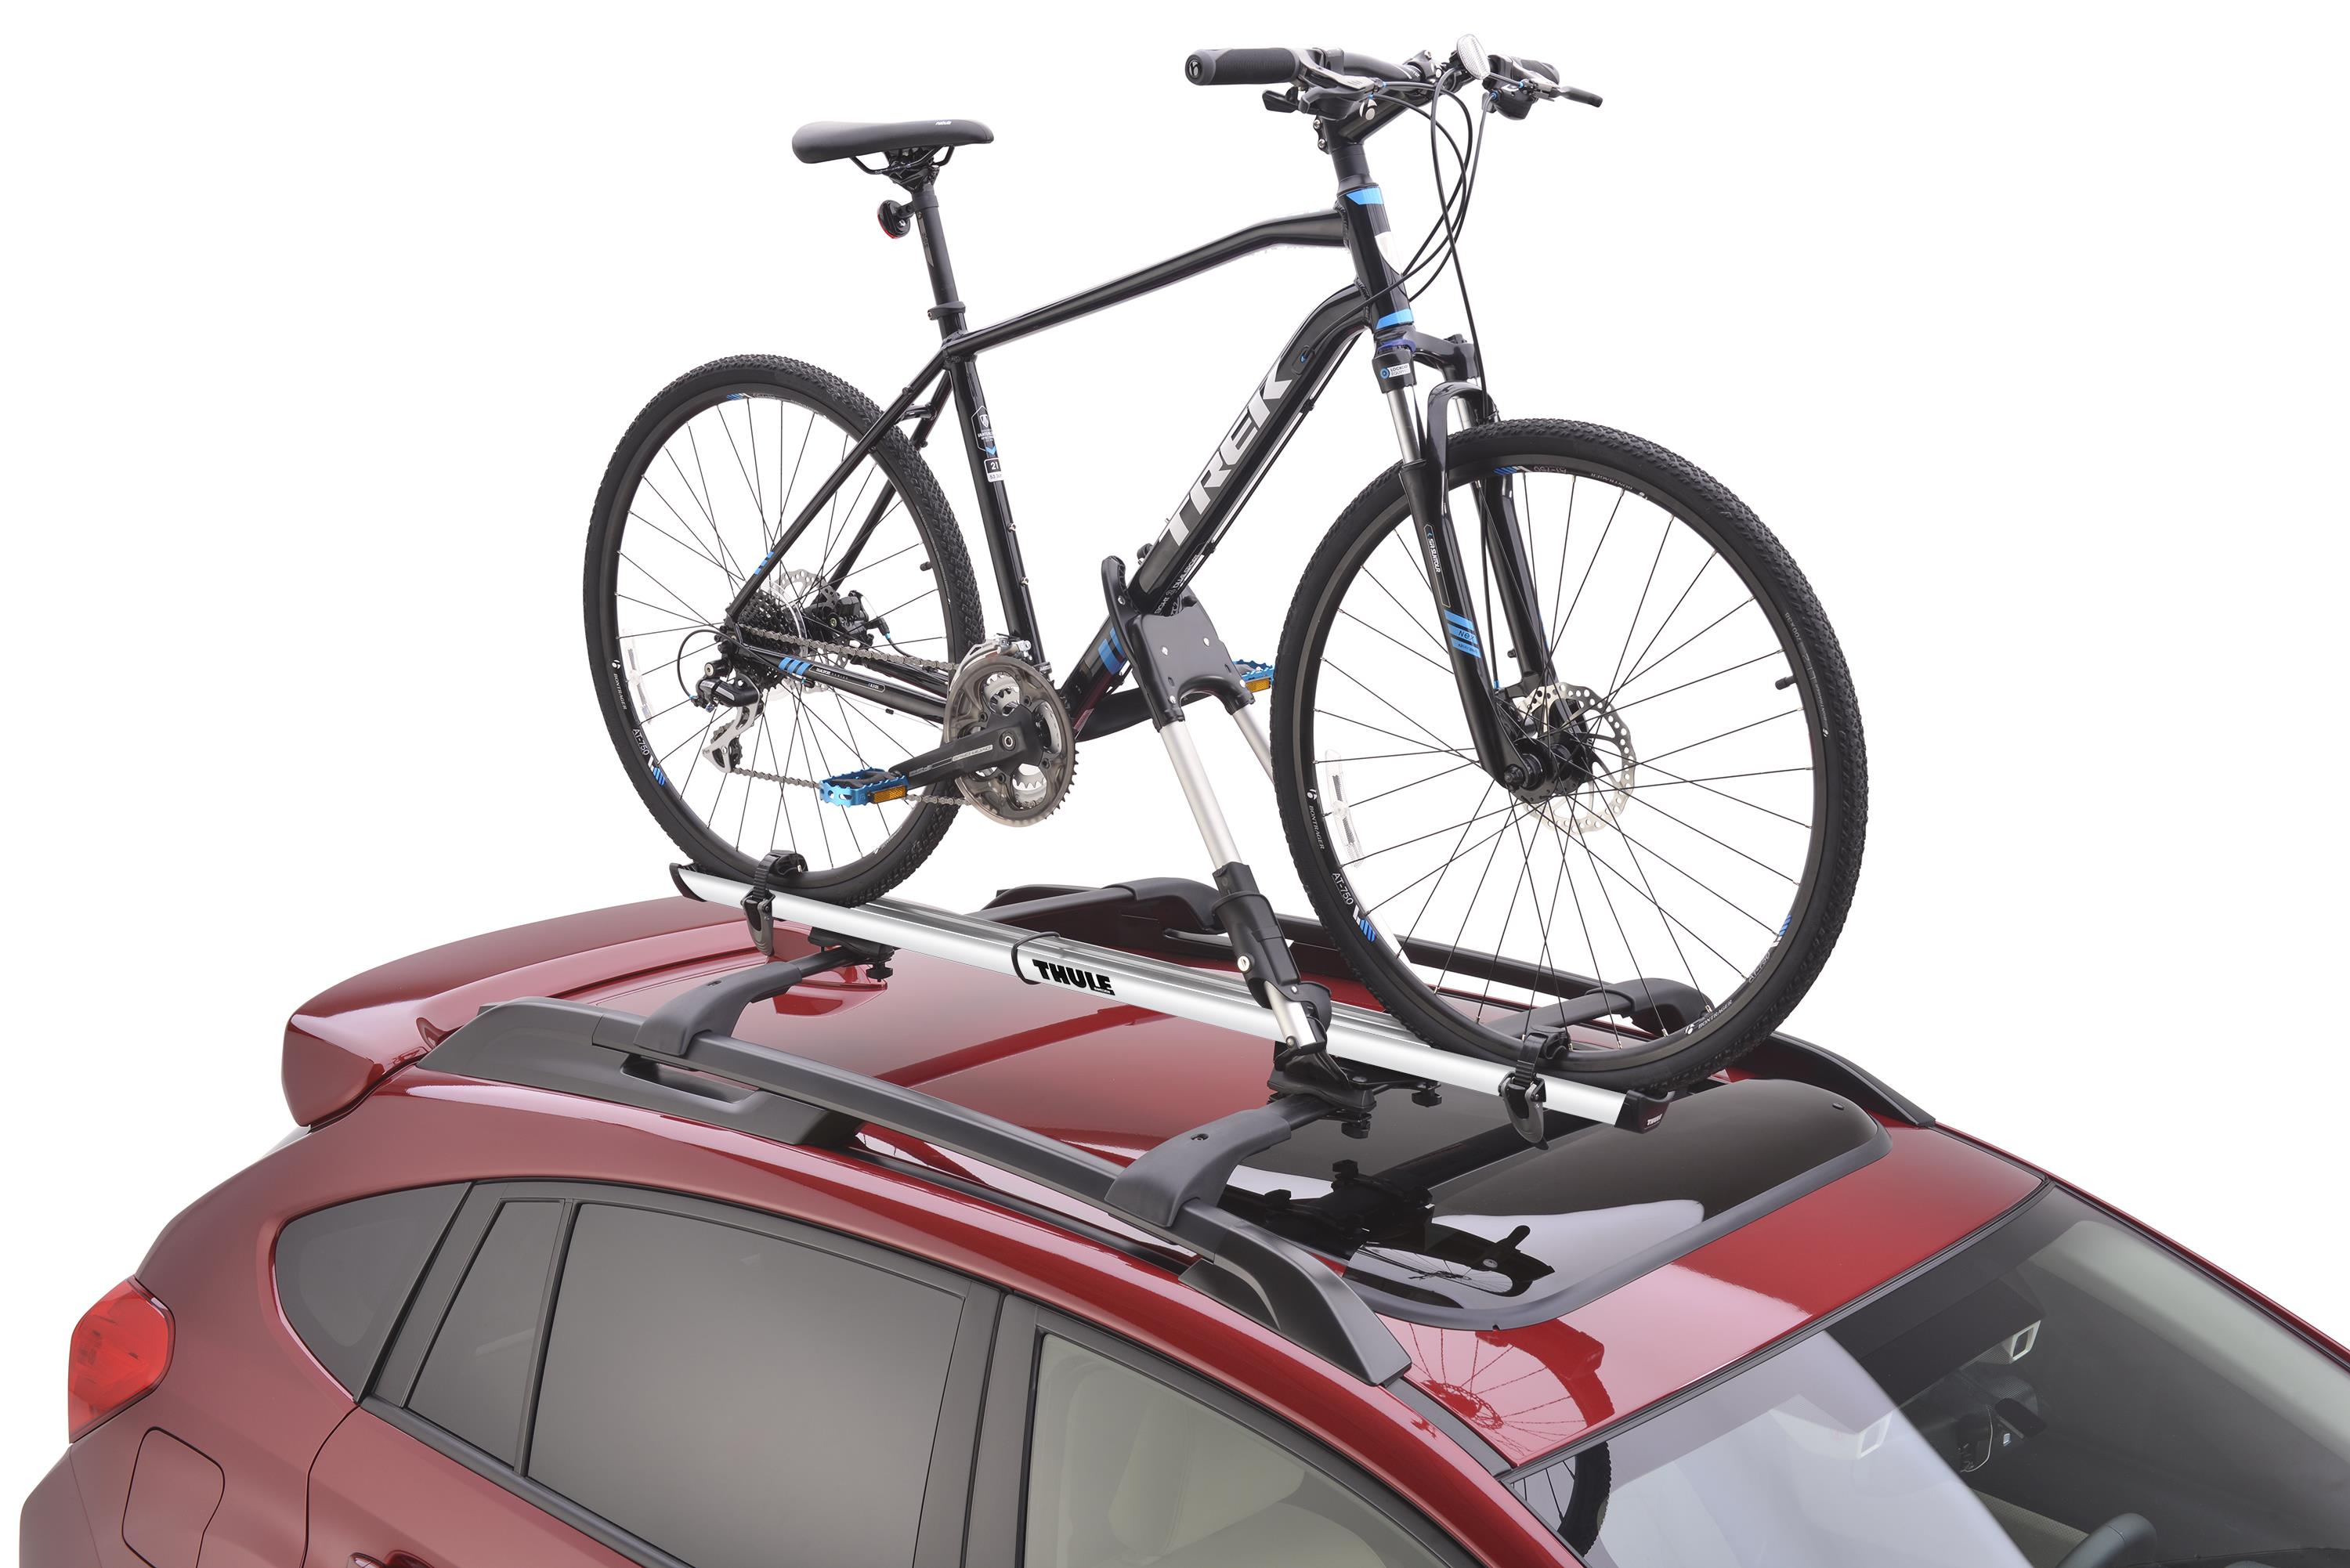 2018 Subaru Forester Thule 174 Bike Carrier Roof Mounted